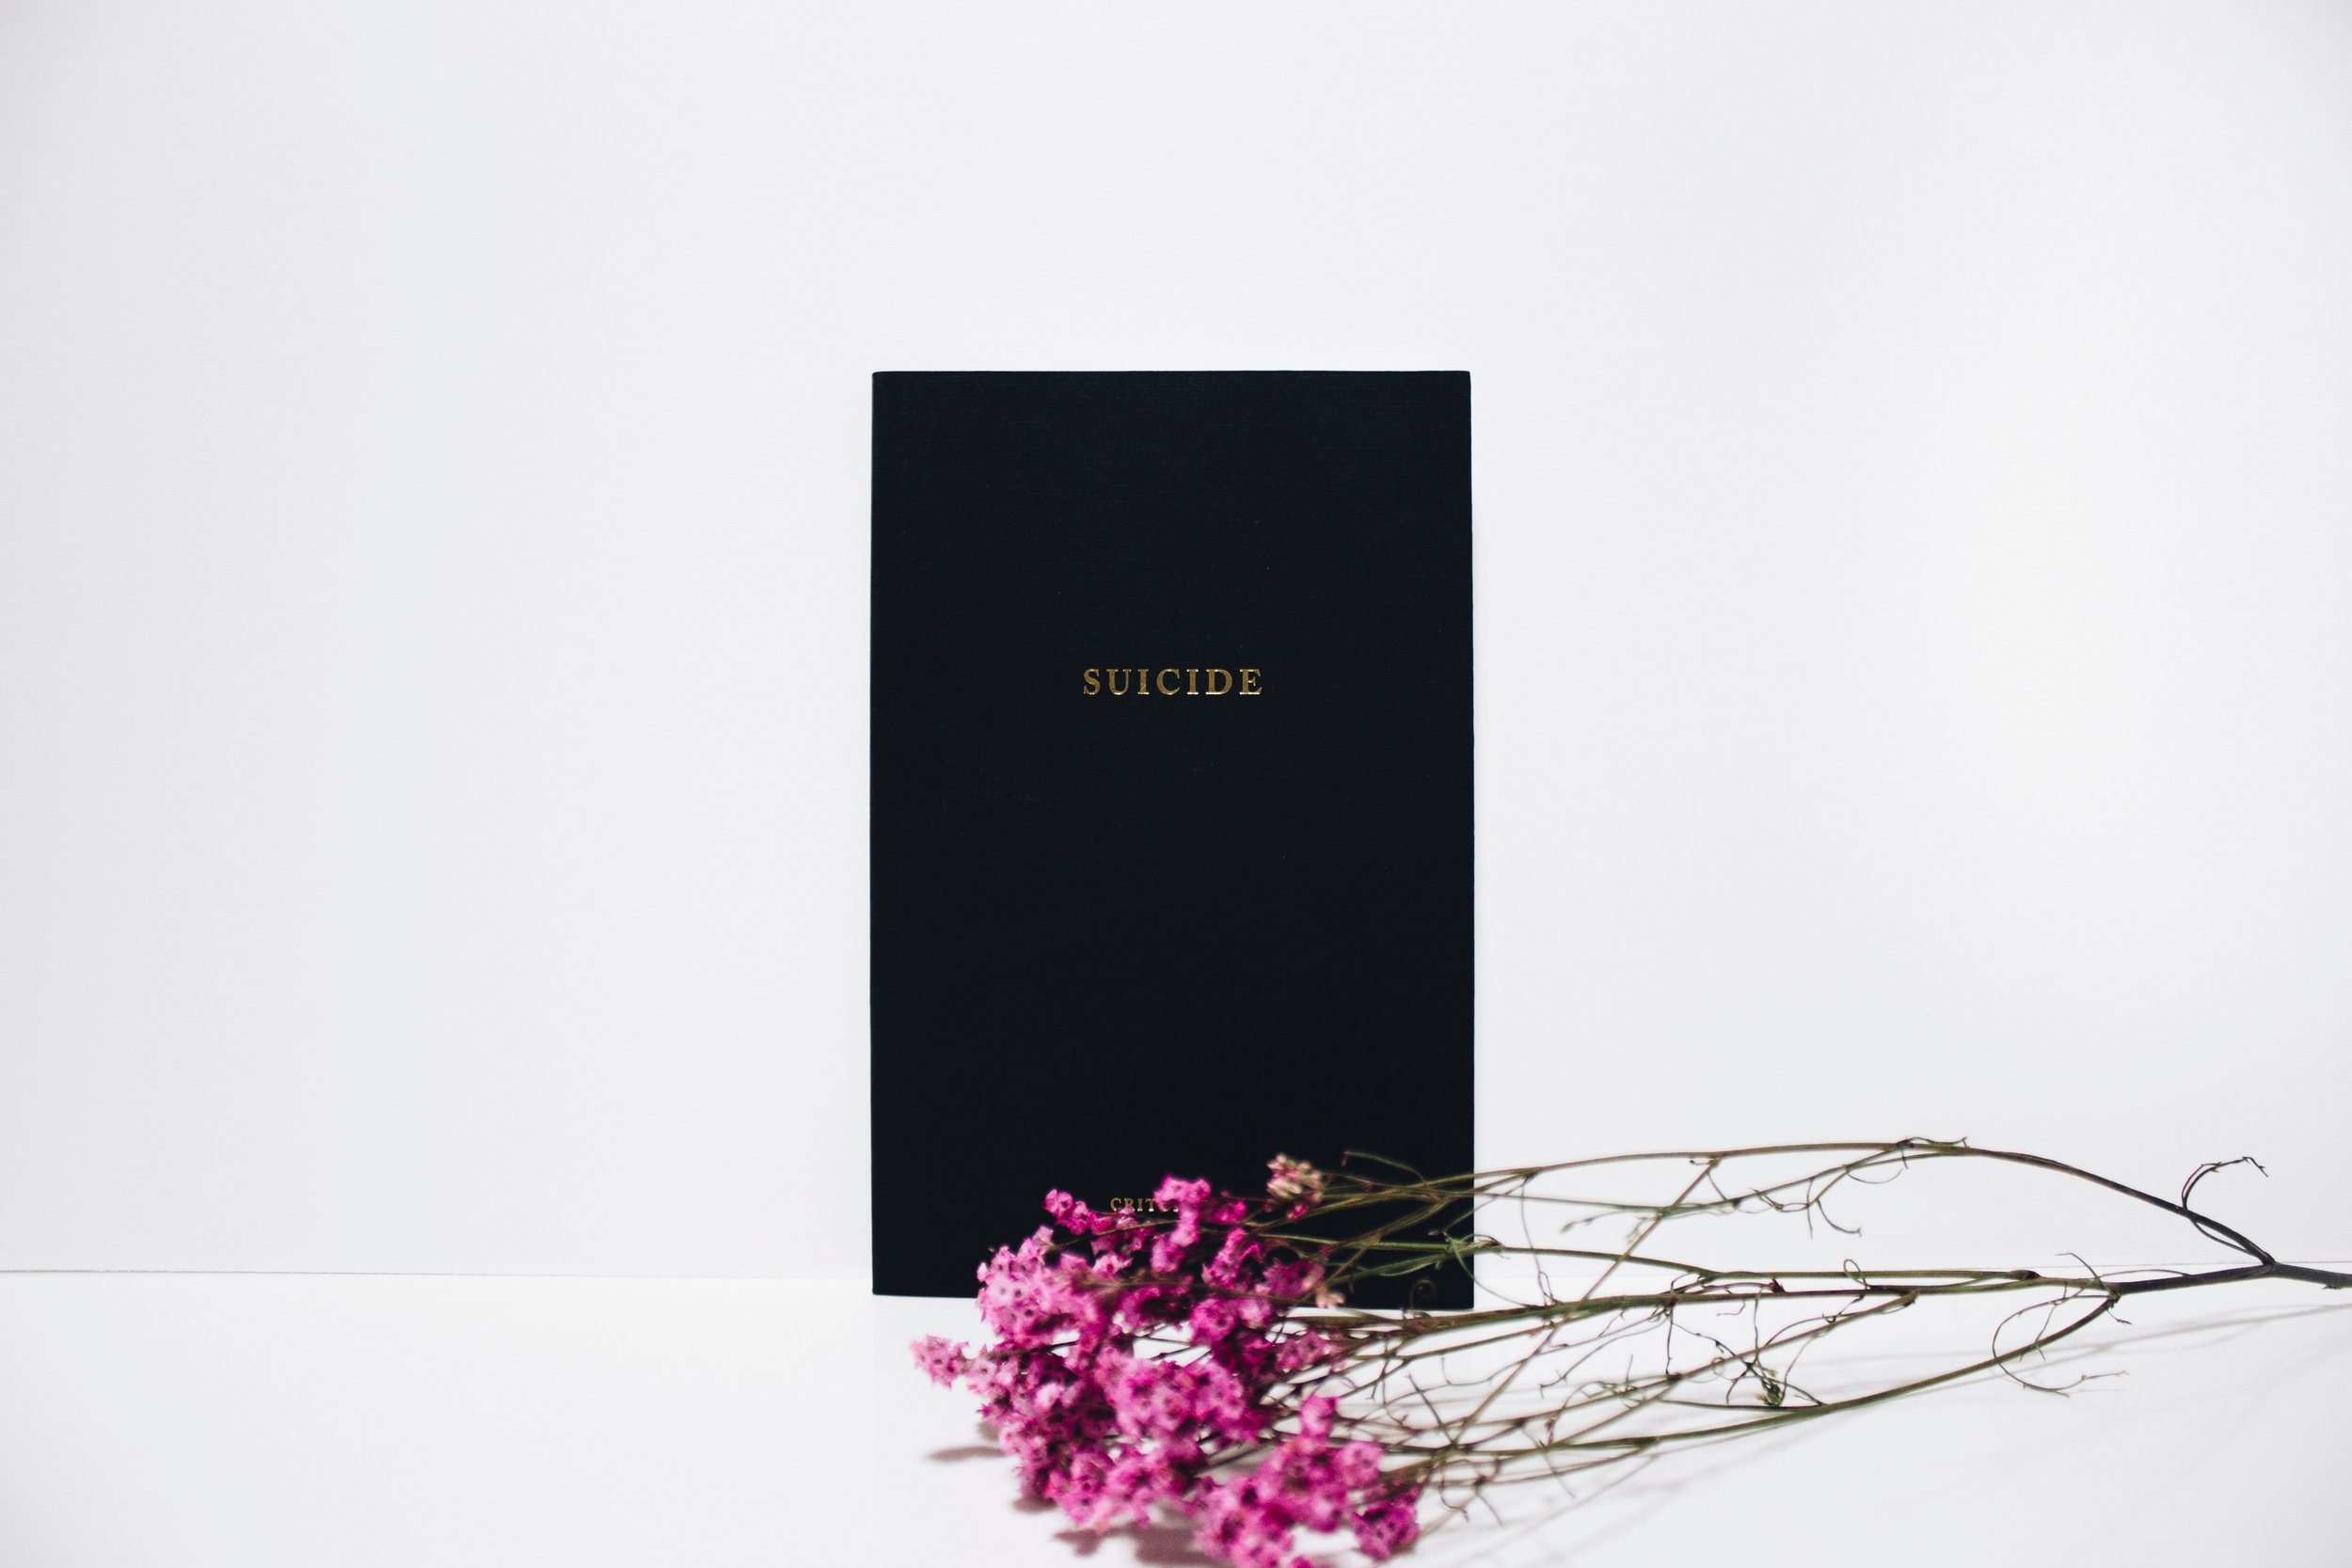 thought-catalog-suicide-pink-flowers.jpg